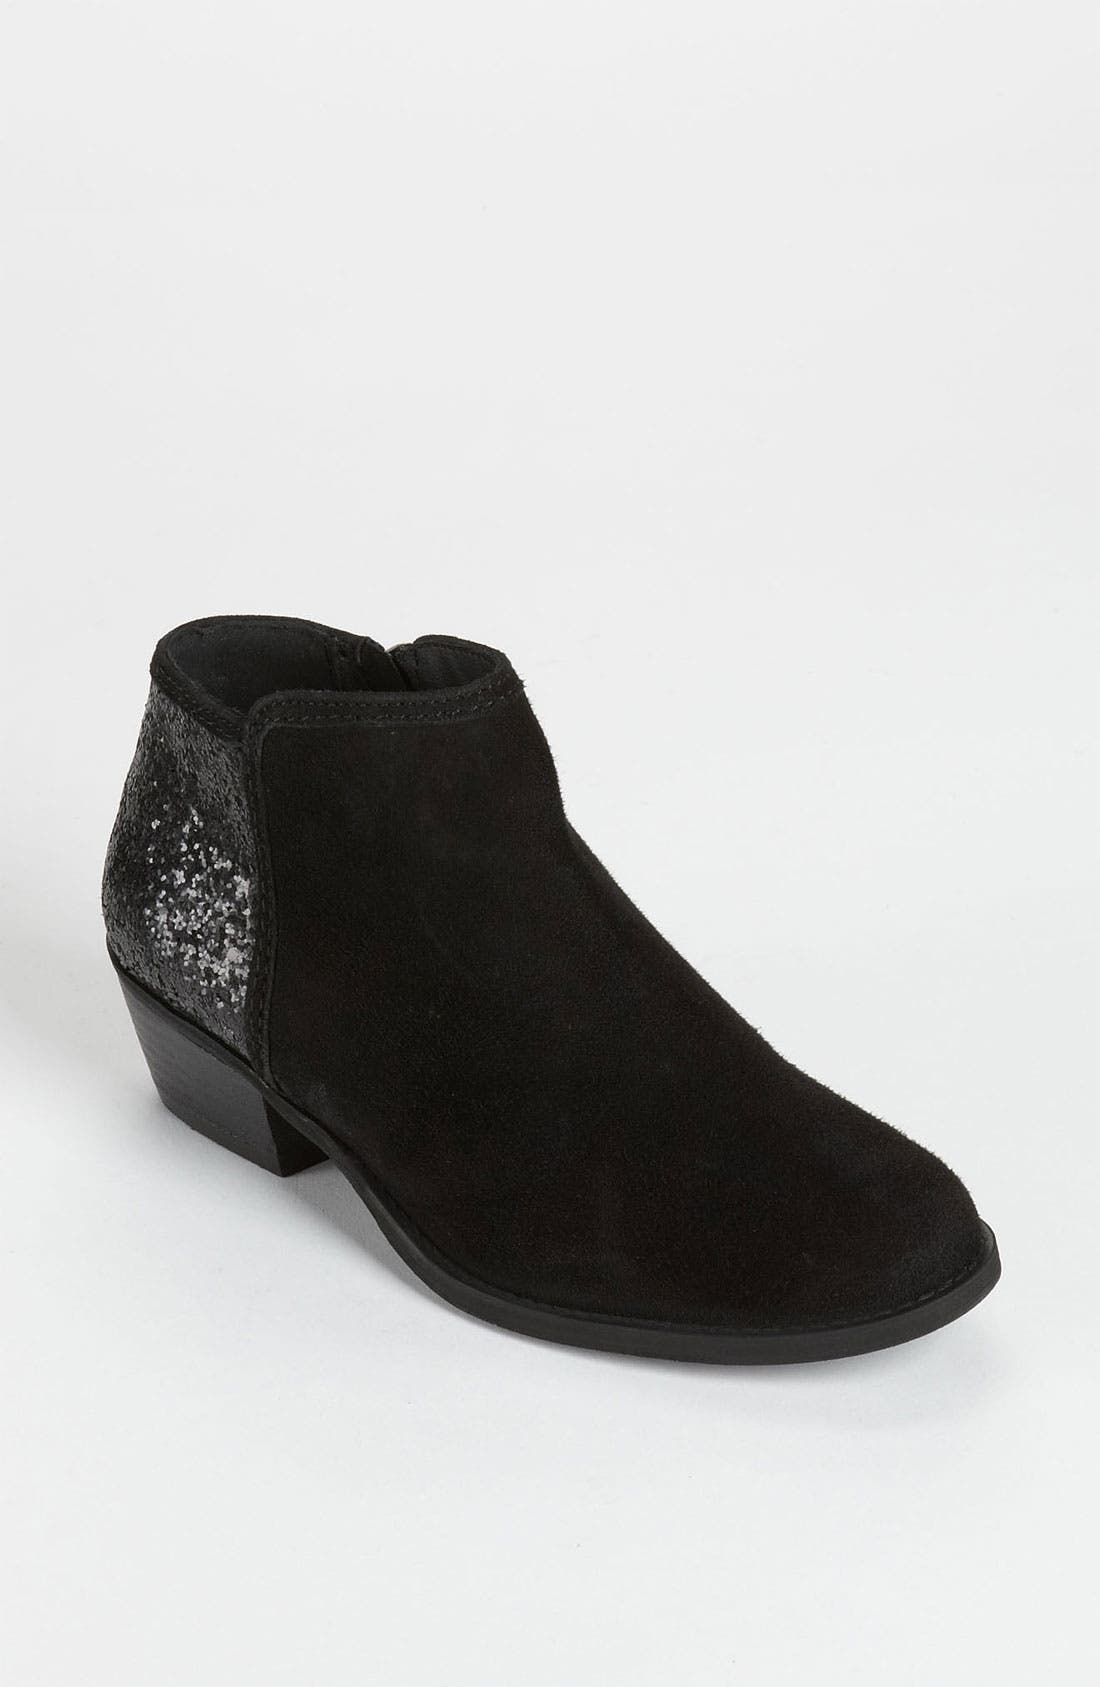 Alternate Image 1 Selected - Steve Madden 'Ramiro' Bootie